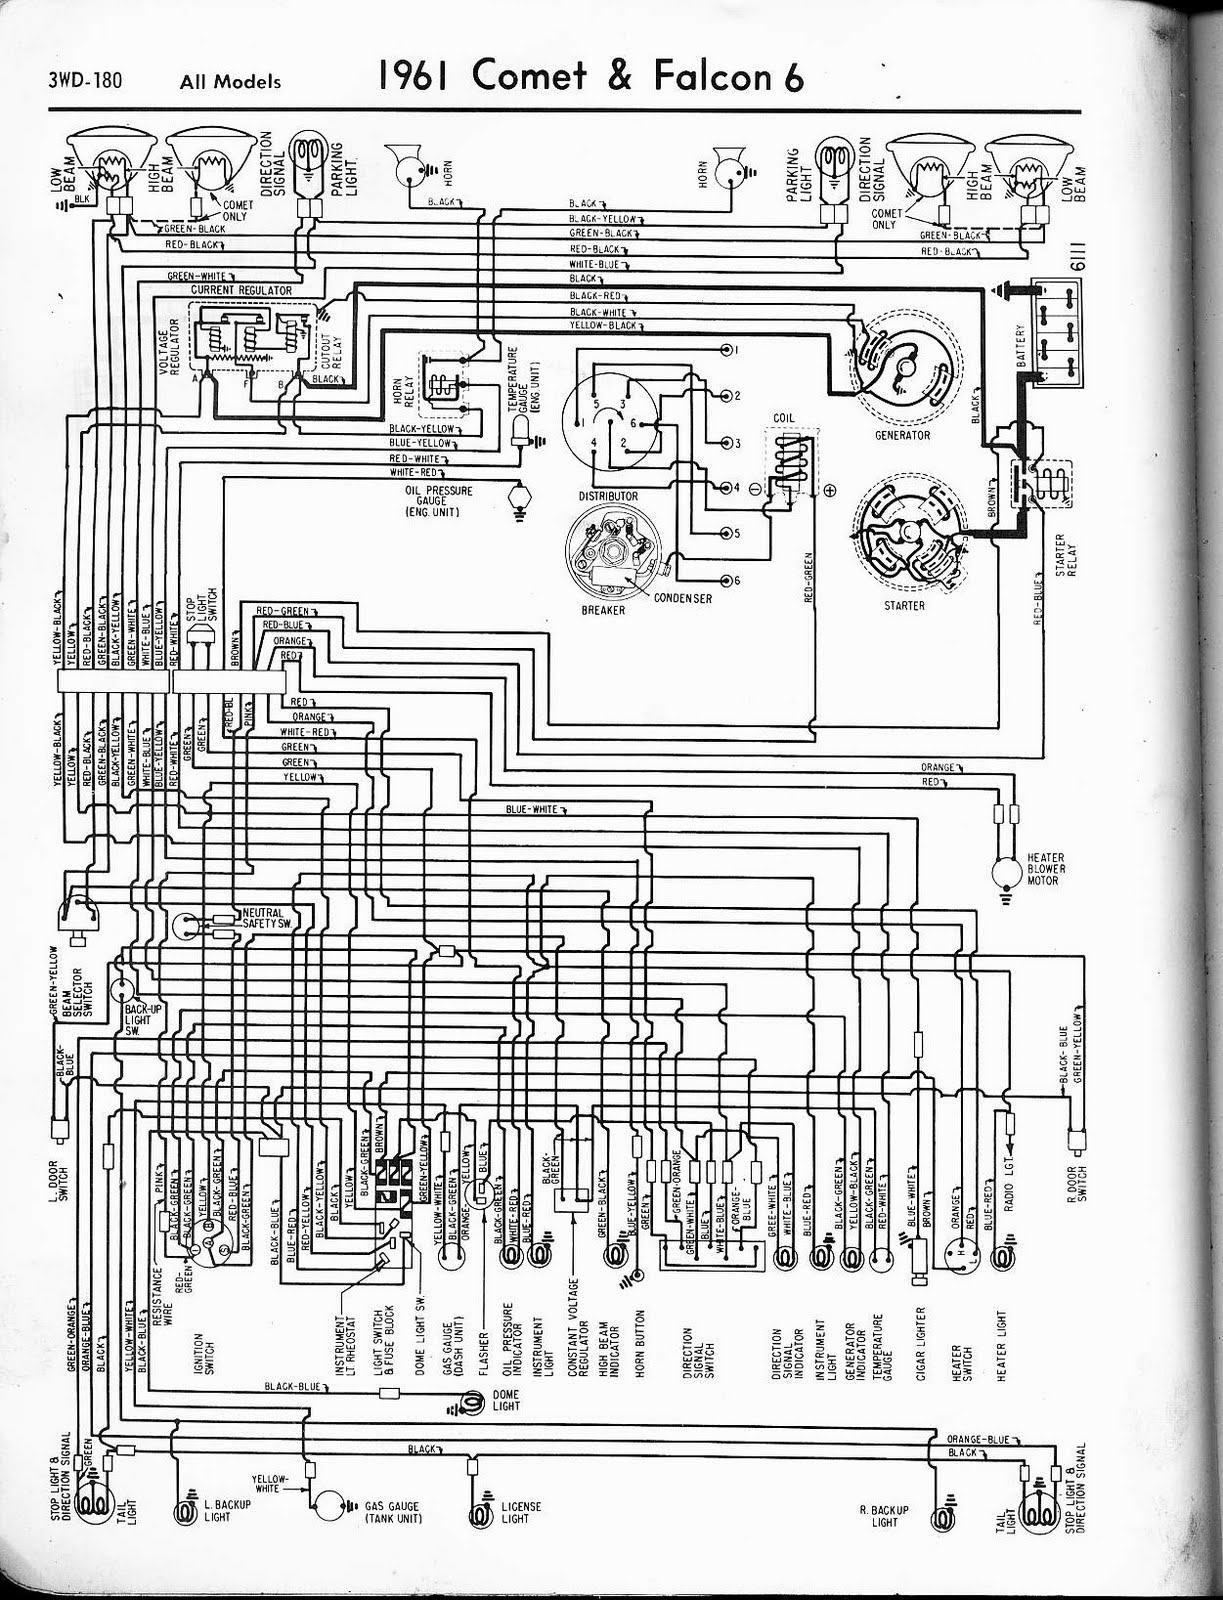 1977 Oldsmobile Fuse Box Wiring Diagram Will Be A Thing 1978 Engine Free Auto 1961 Ford Falcon Comet Delta 88